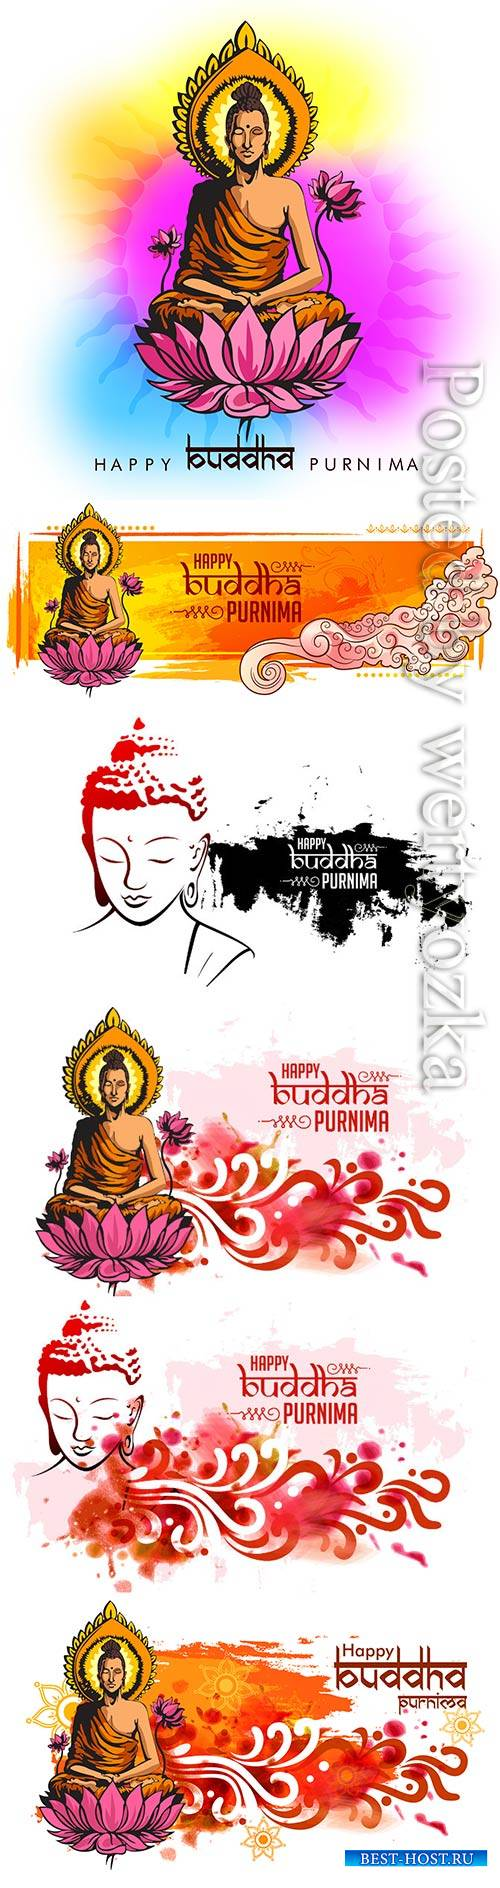 Buddha Purnima vector background with nice and creative design